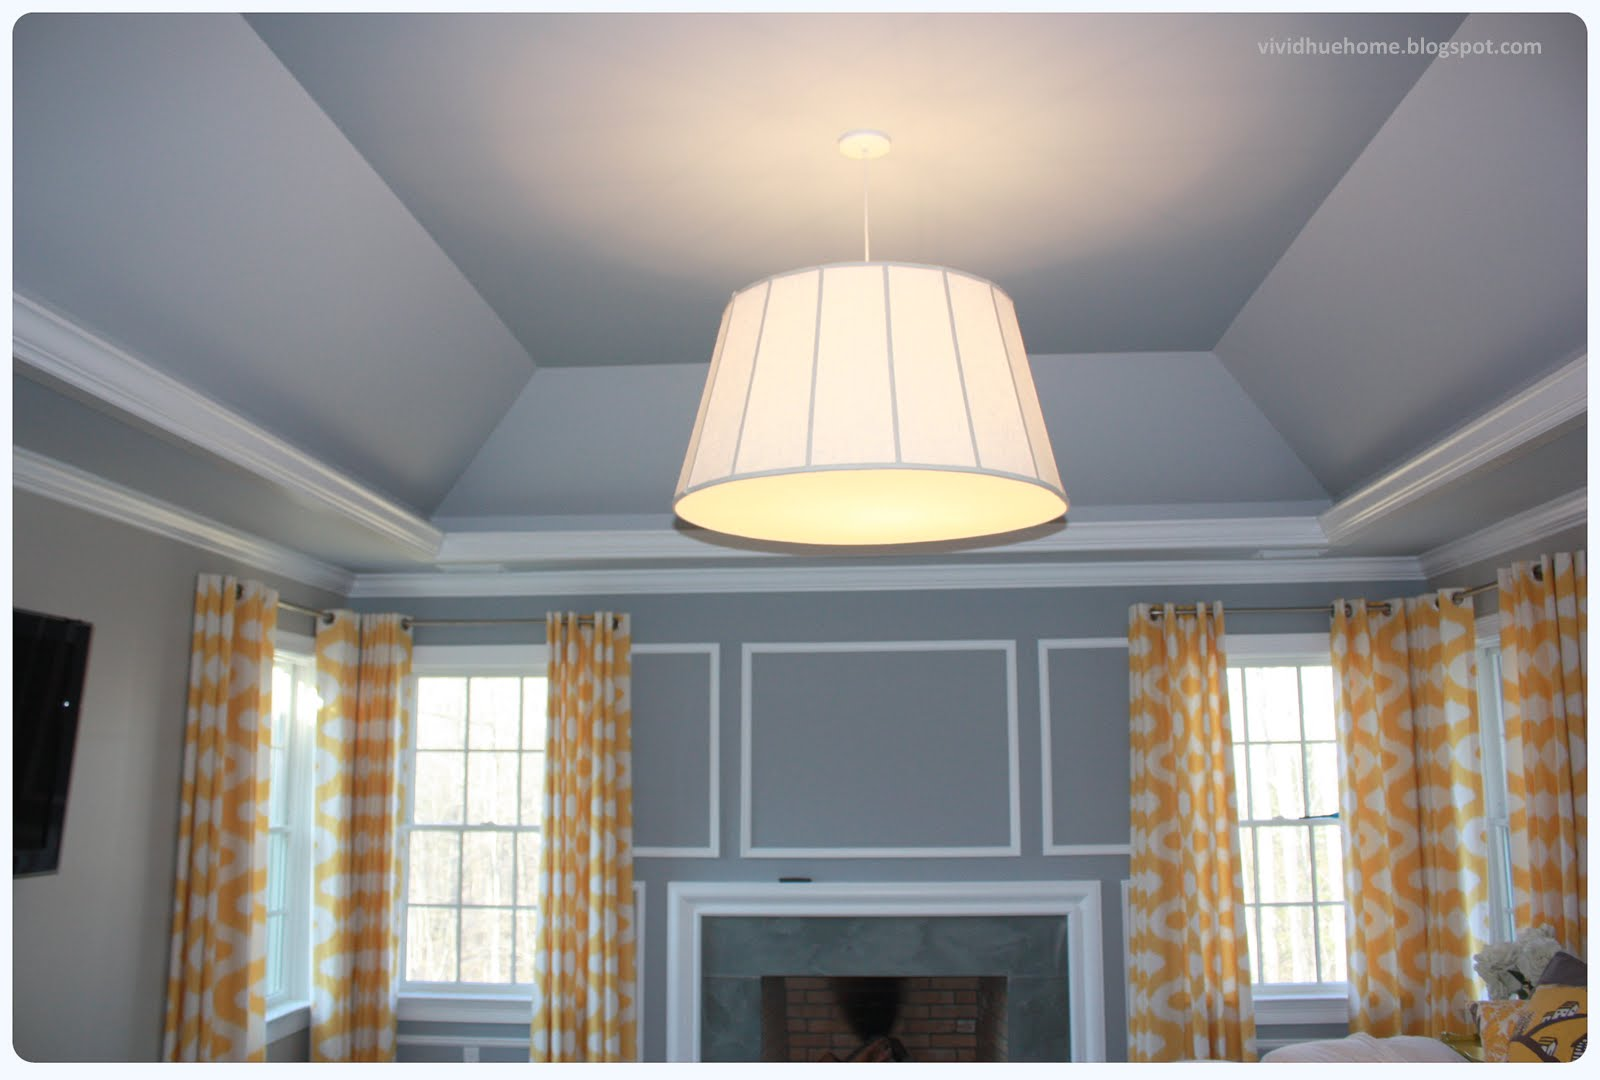 Vivid Hue Home Sky S The Limit Painted Ceilings